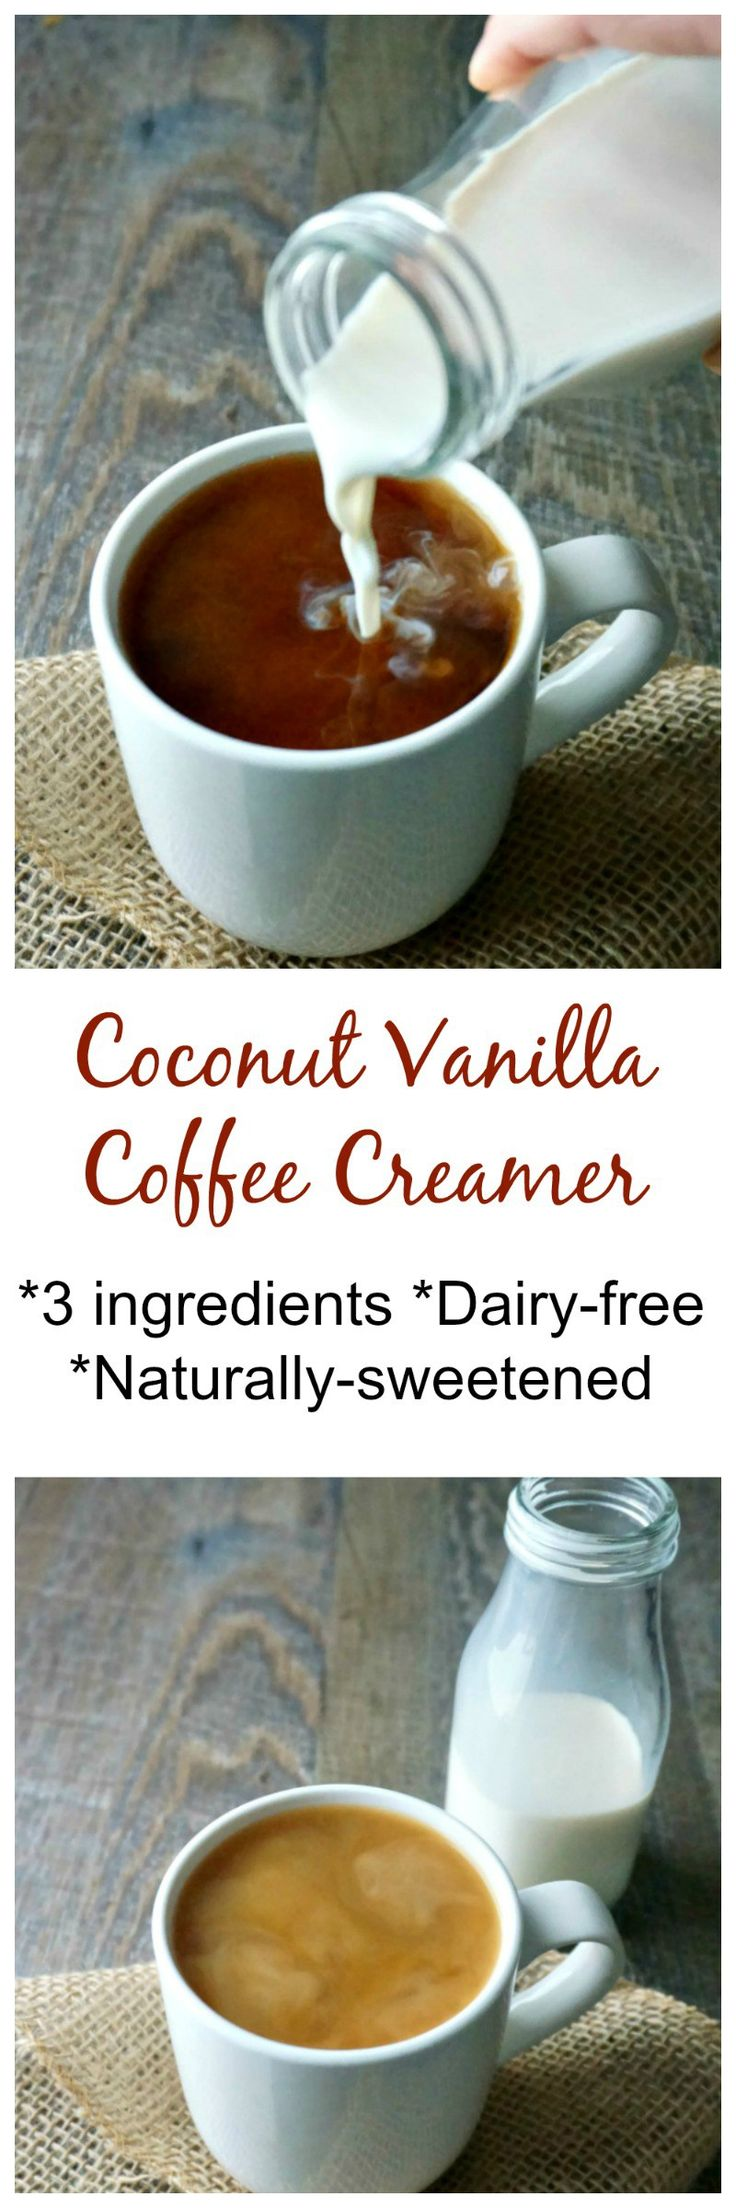 Coconut Vanilla Coffee Creamer: Forget ever having to buy coffee creamer again. 3 ingredients come together to create a rich creamer that is just the right amount of sweet for your morning coffee. #paleo #glutenfree #dairyfree